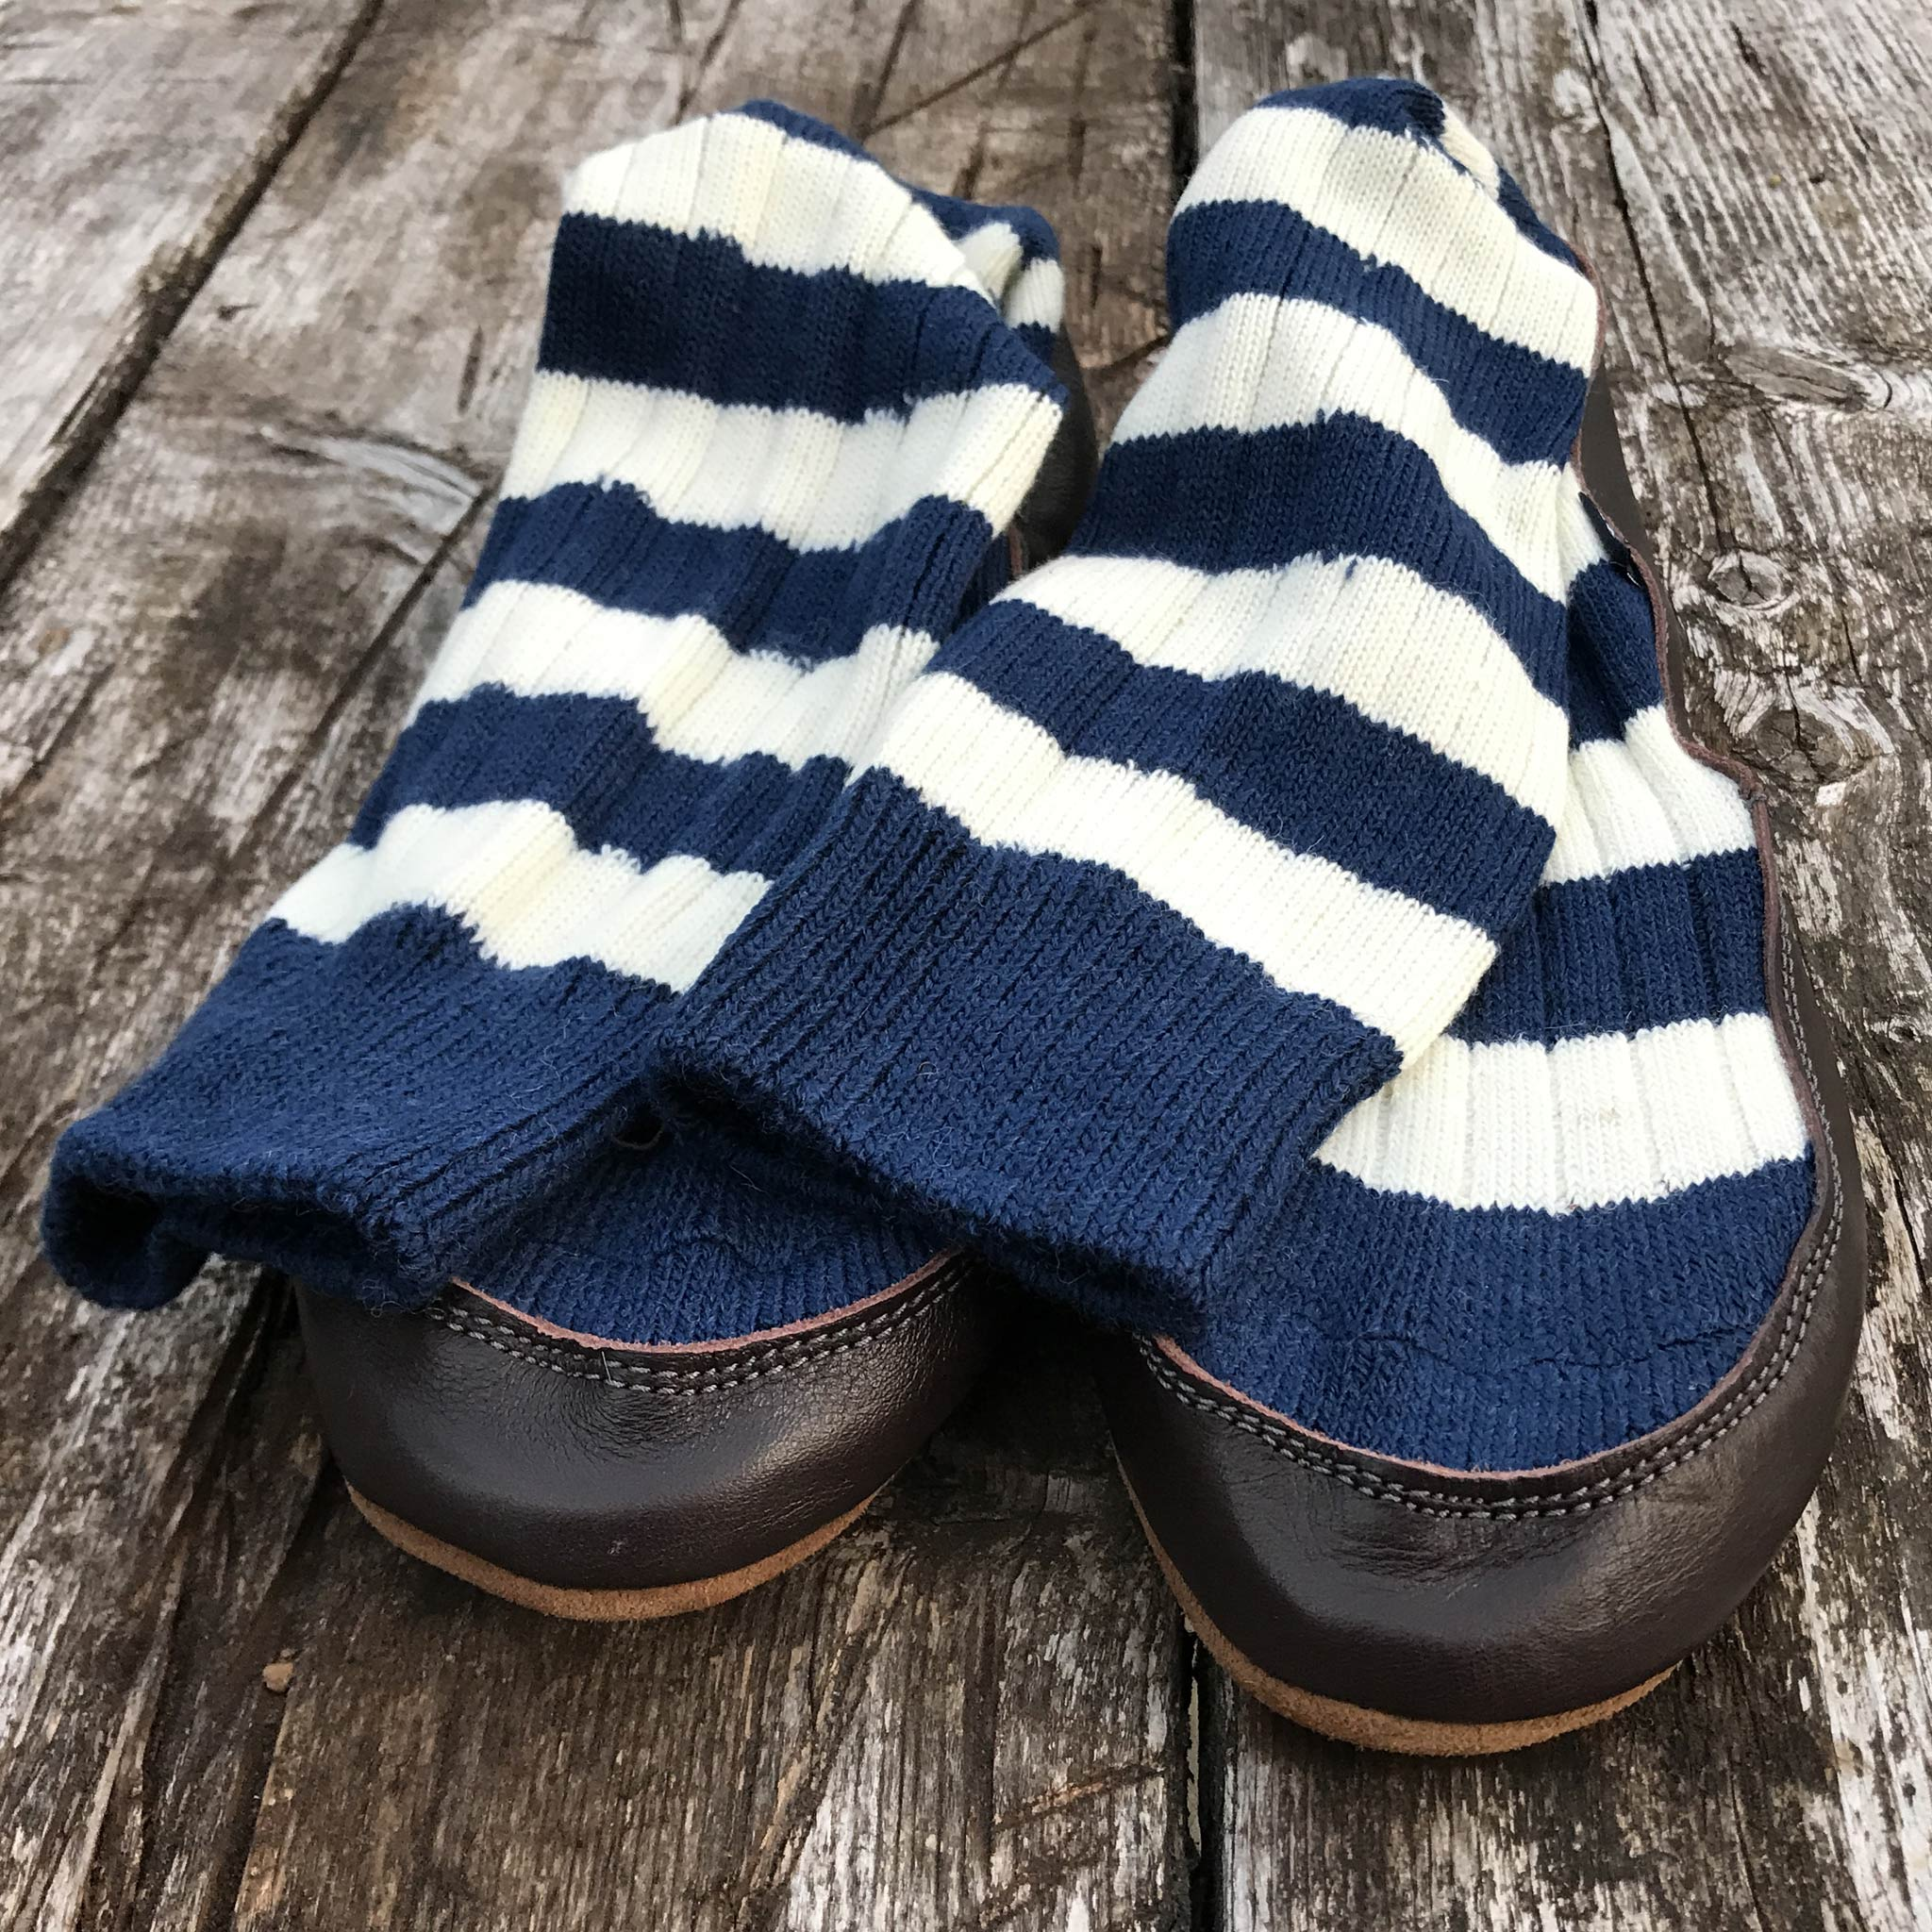 Slipper Sock blue and white stripe - front view